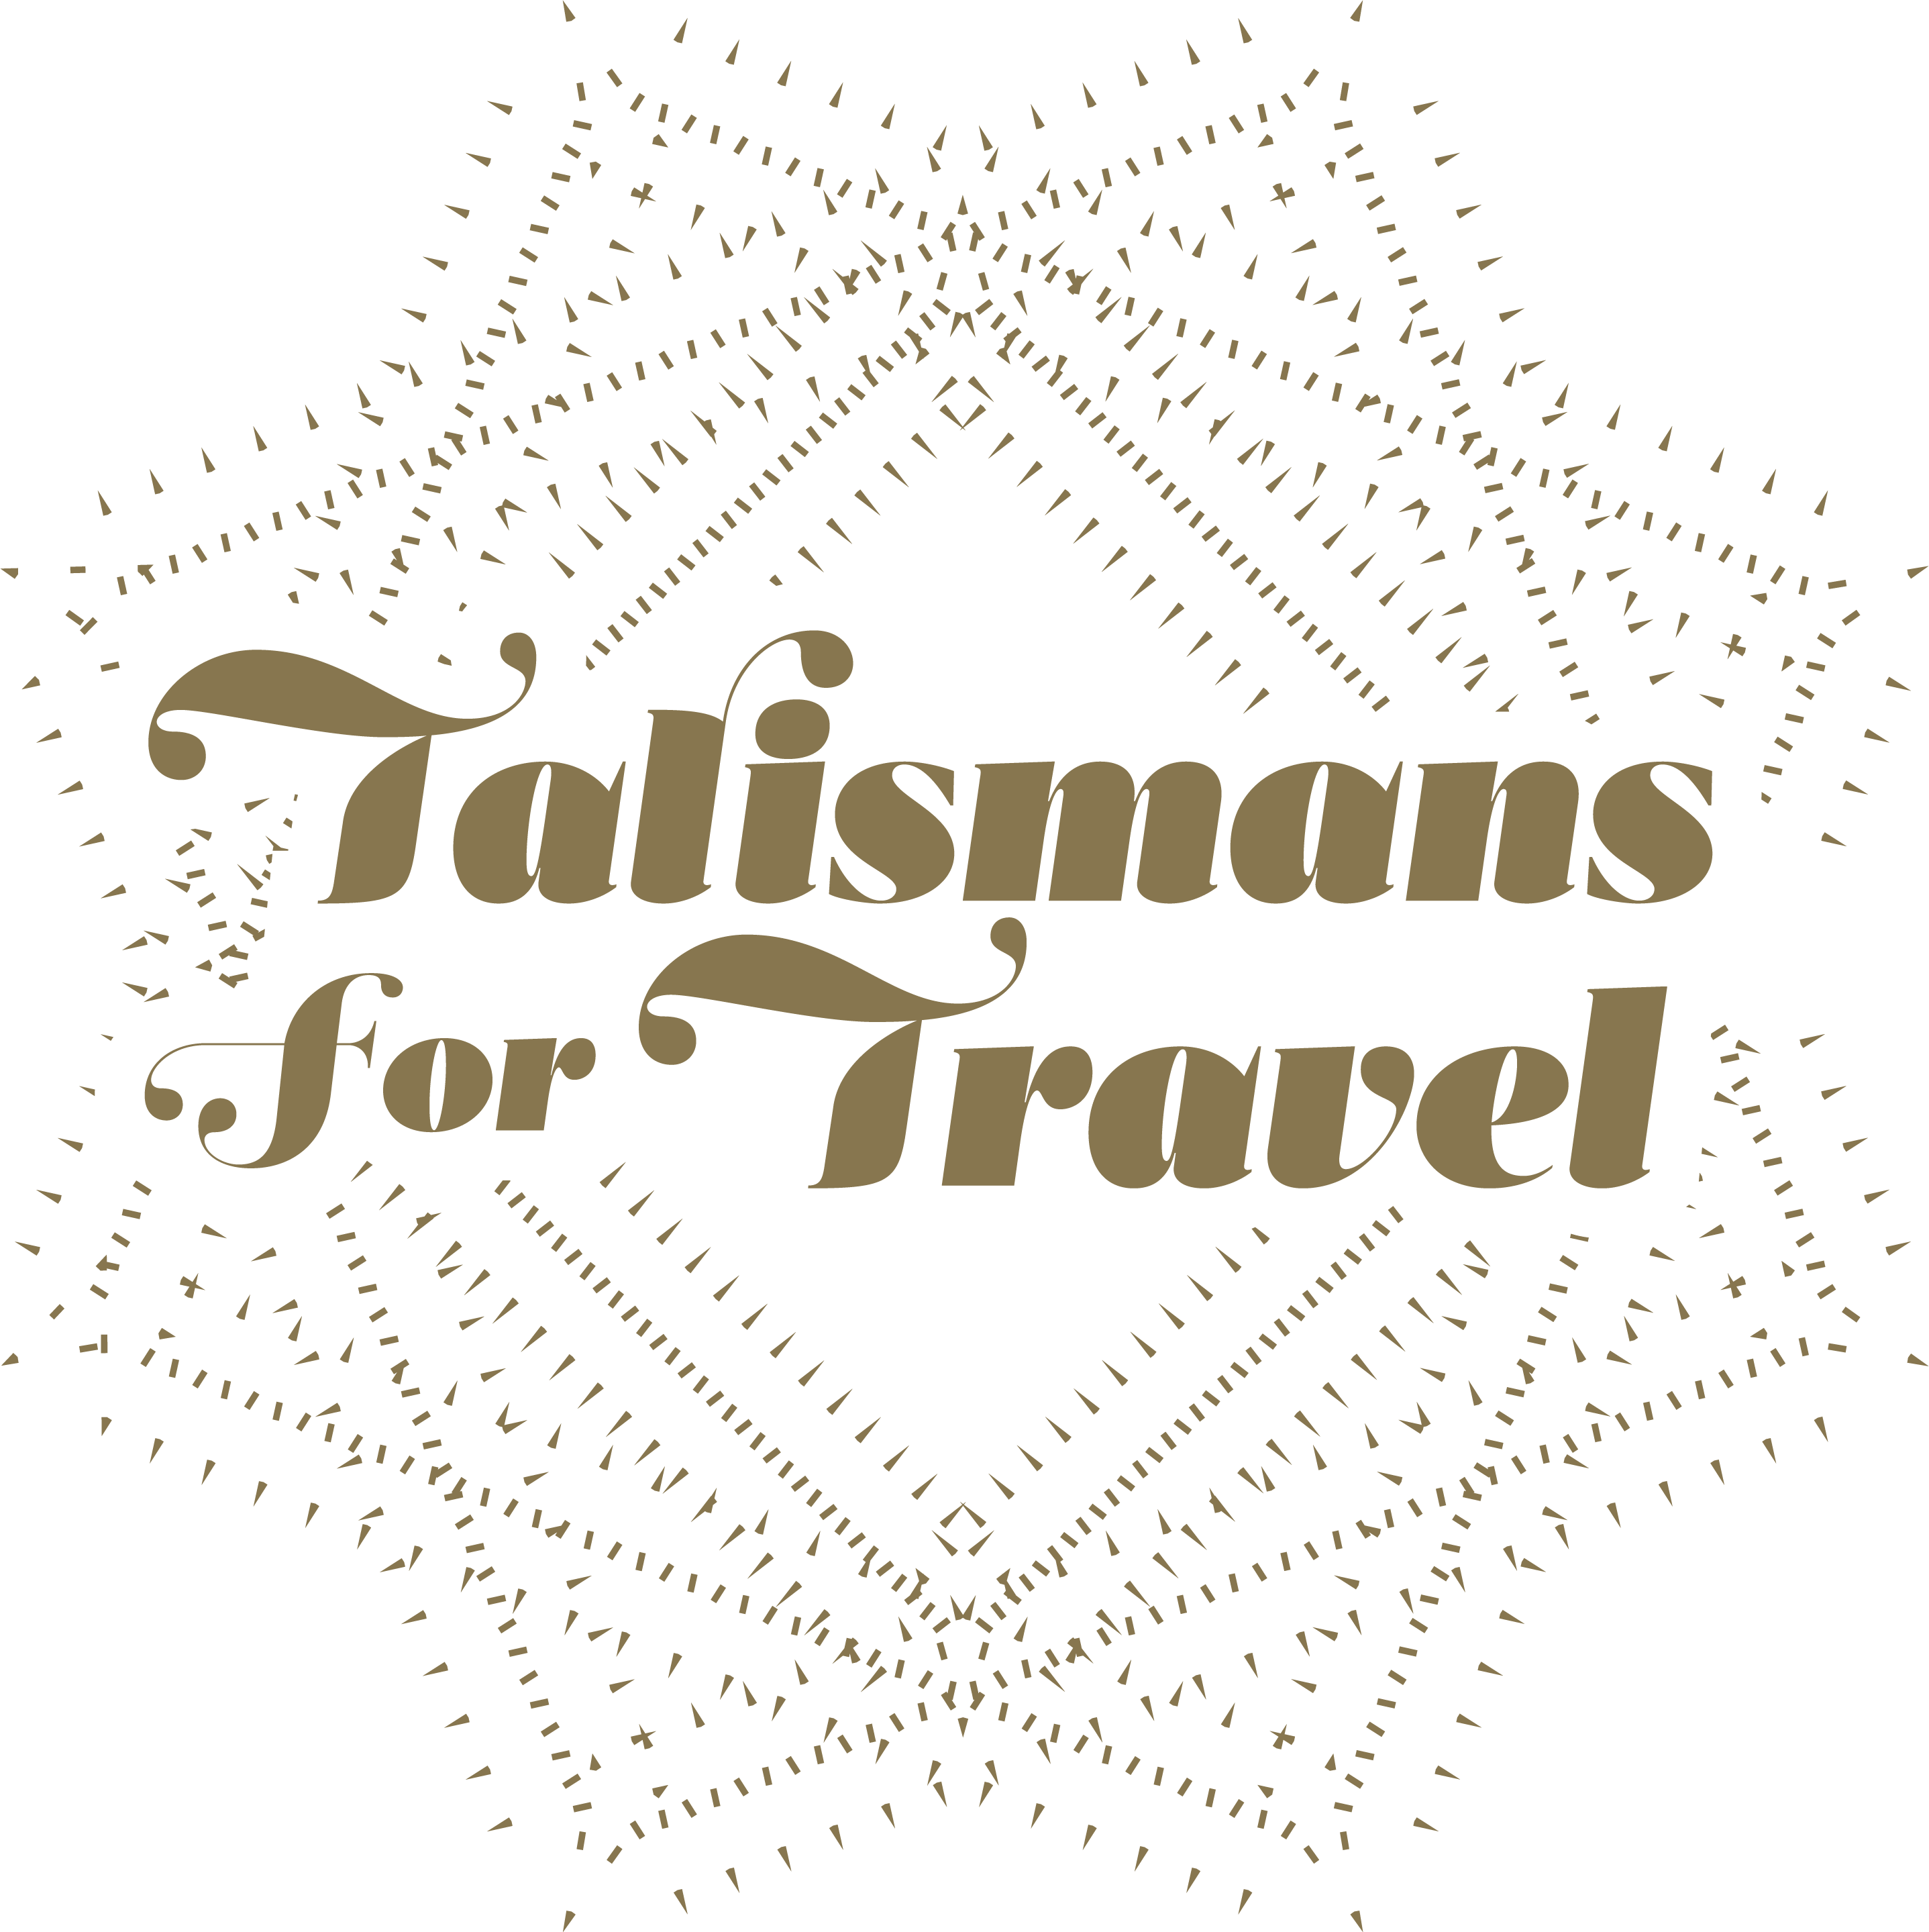 Talismans for travel logo